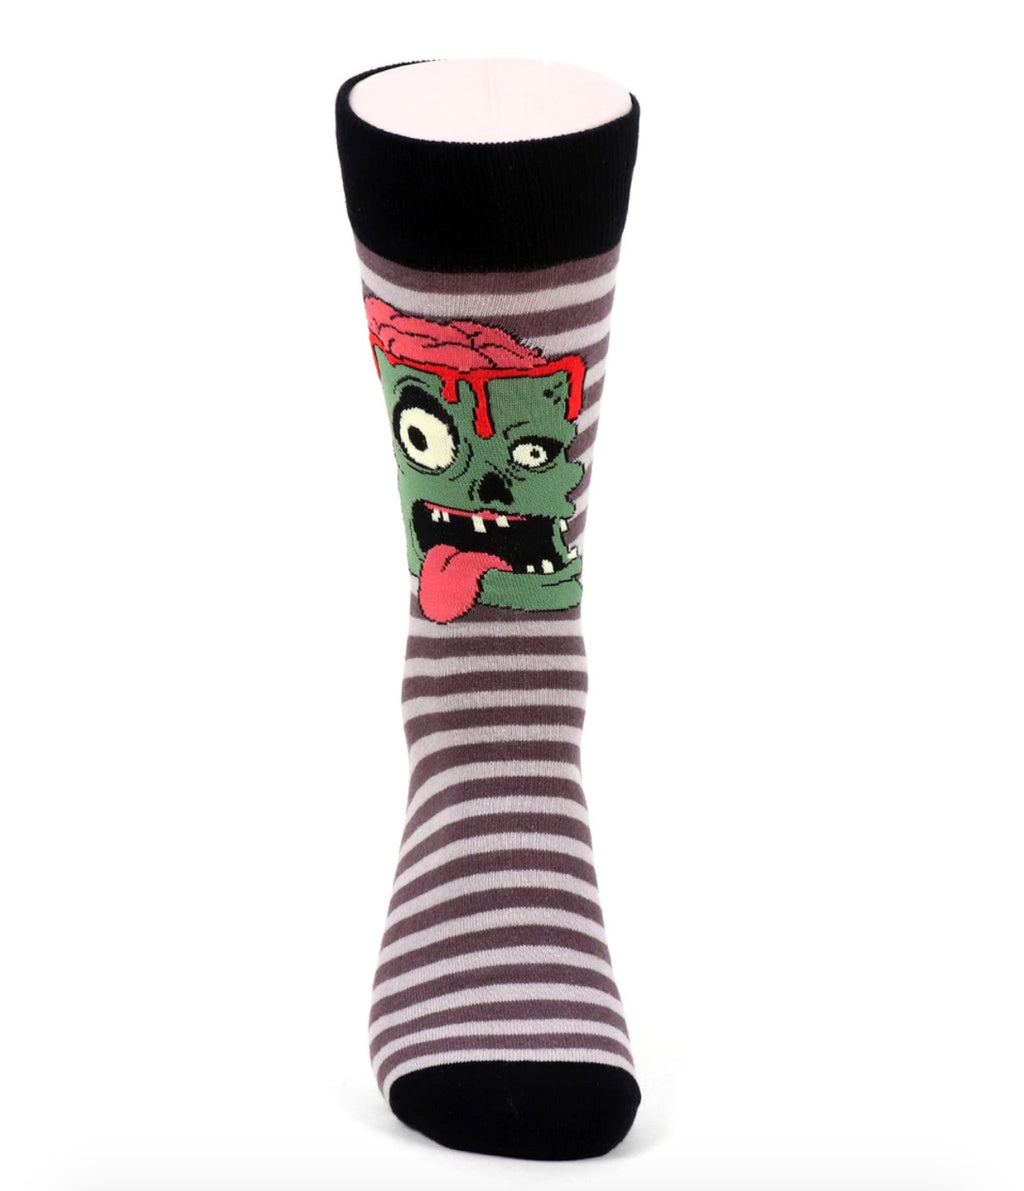 Urban-Peacock Men's Halloween Novelty Socks - Zombie - Grey Striped